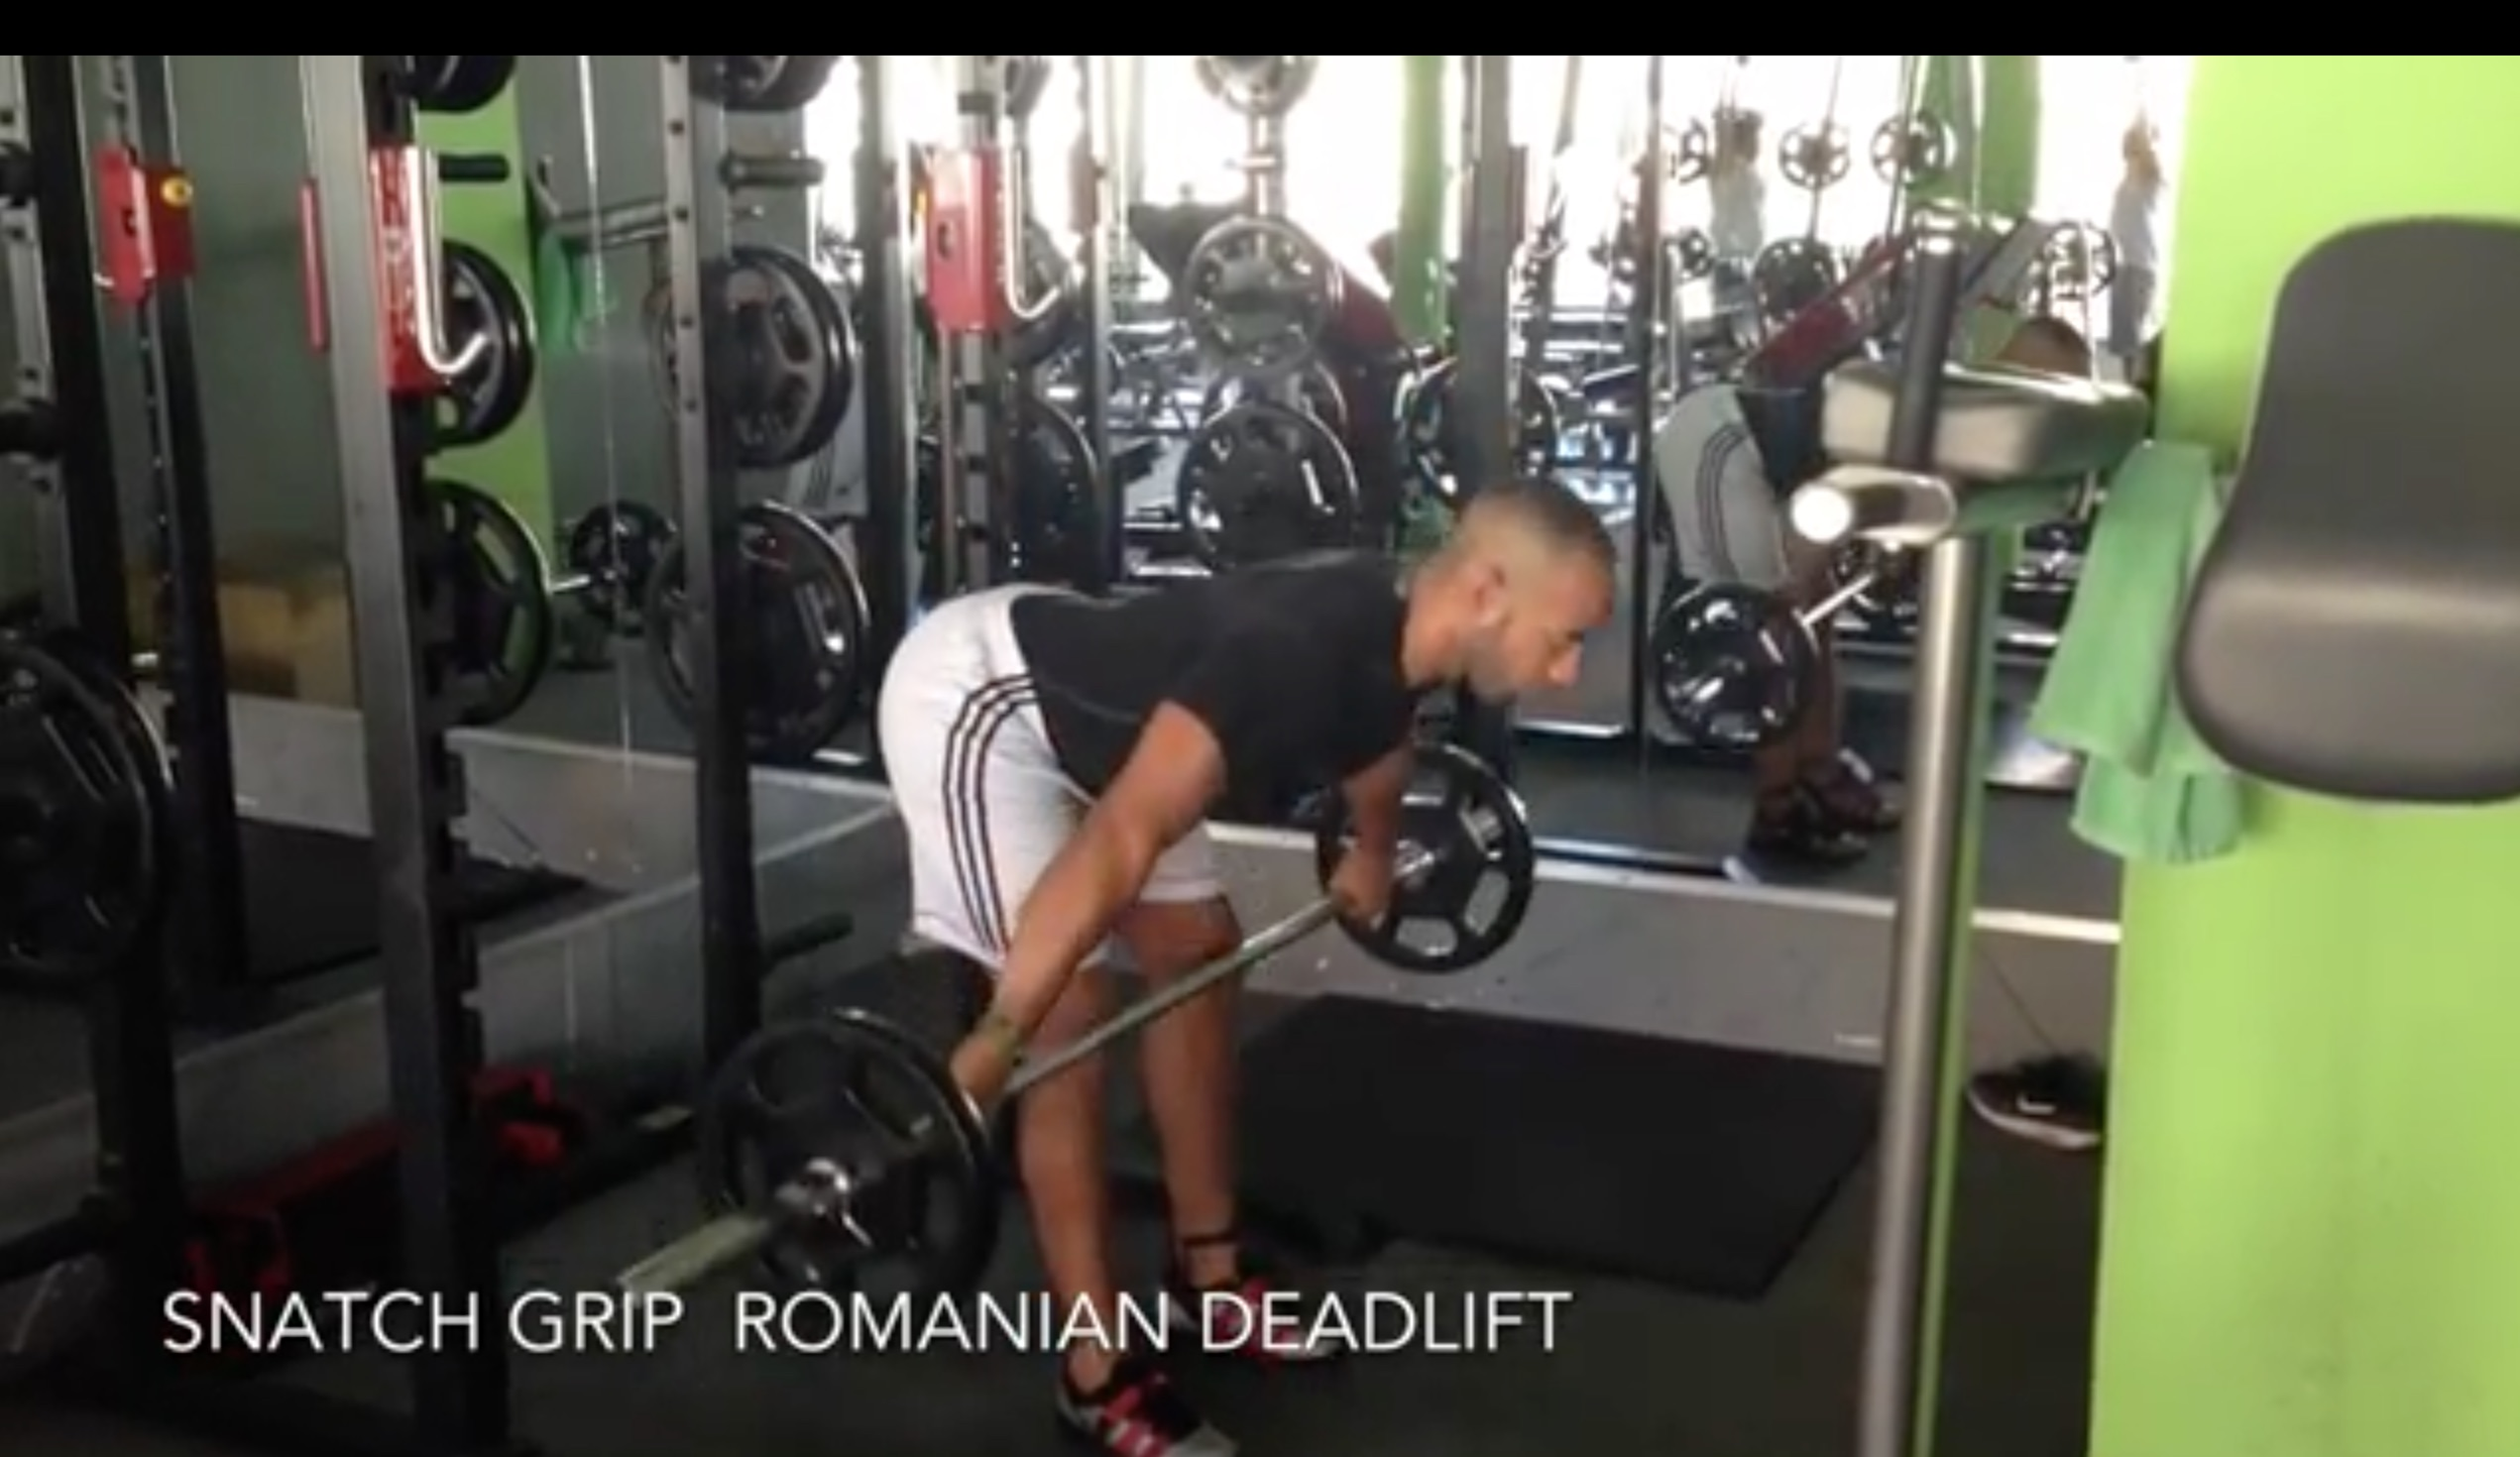 Romainan Deadlift variations you must try